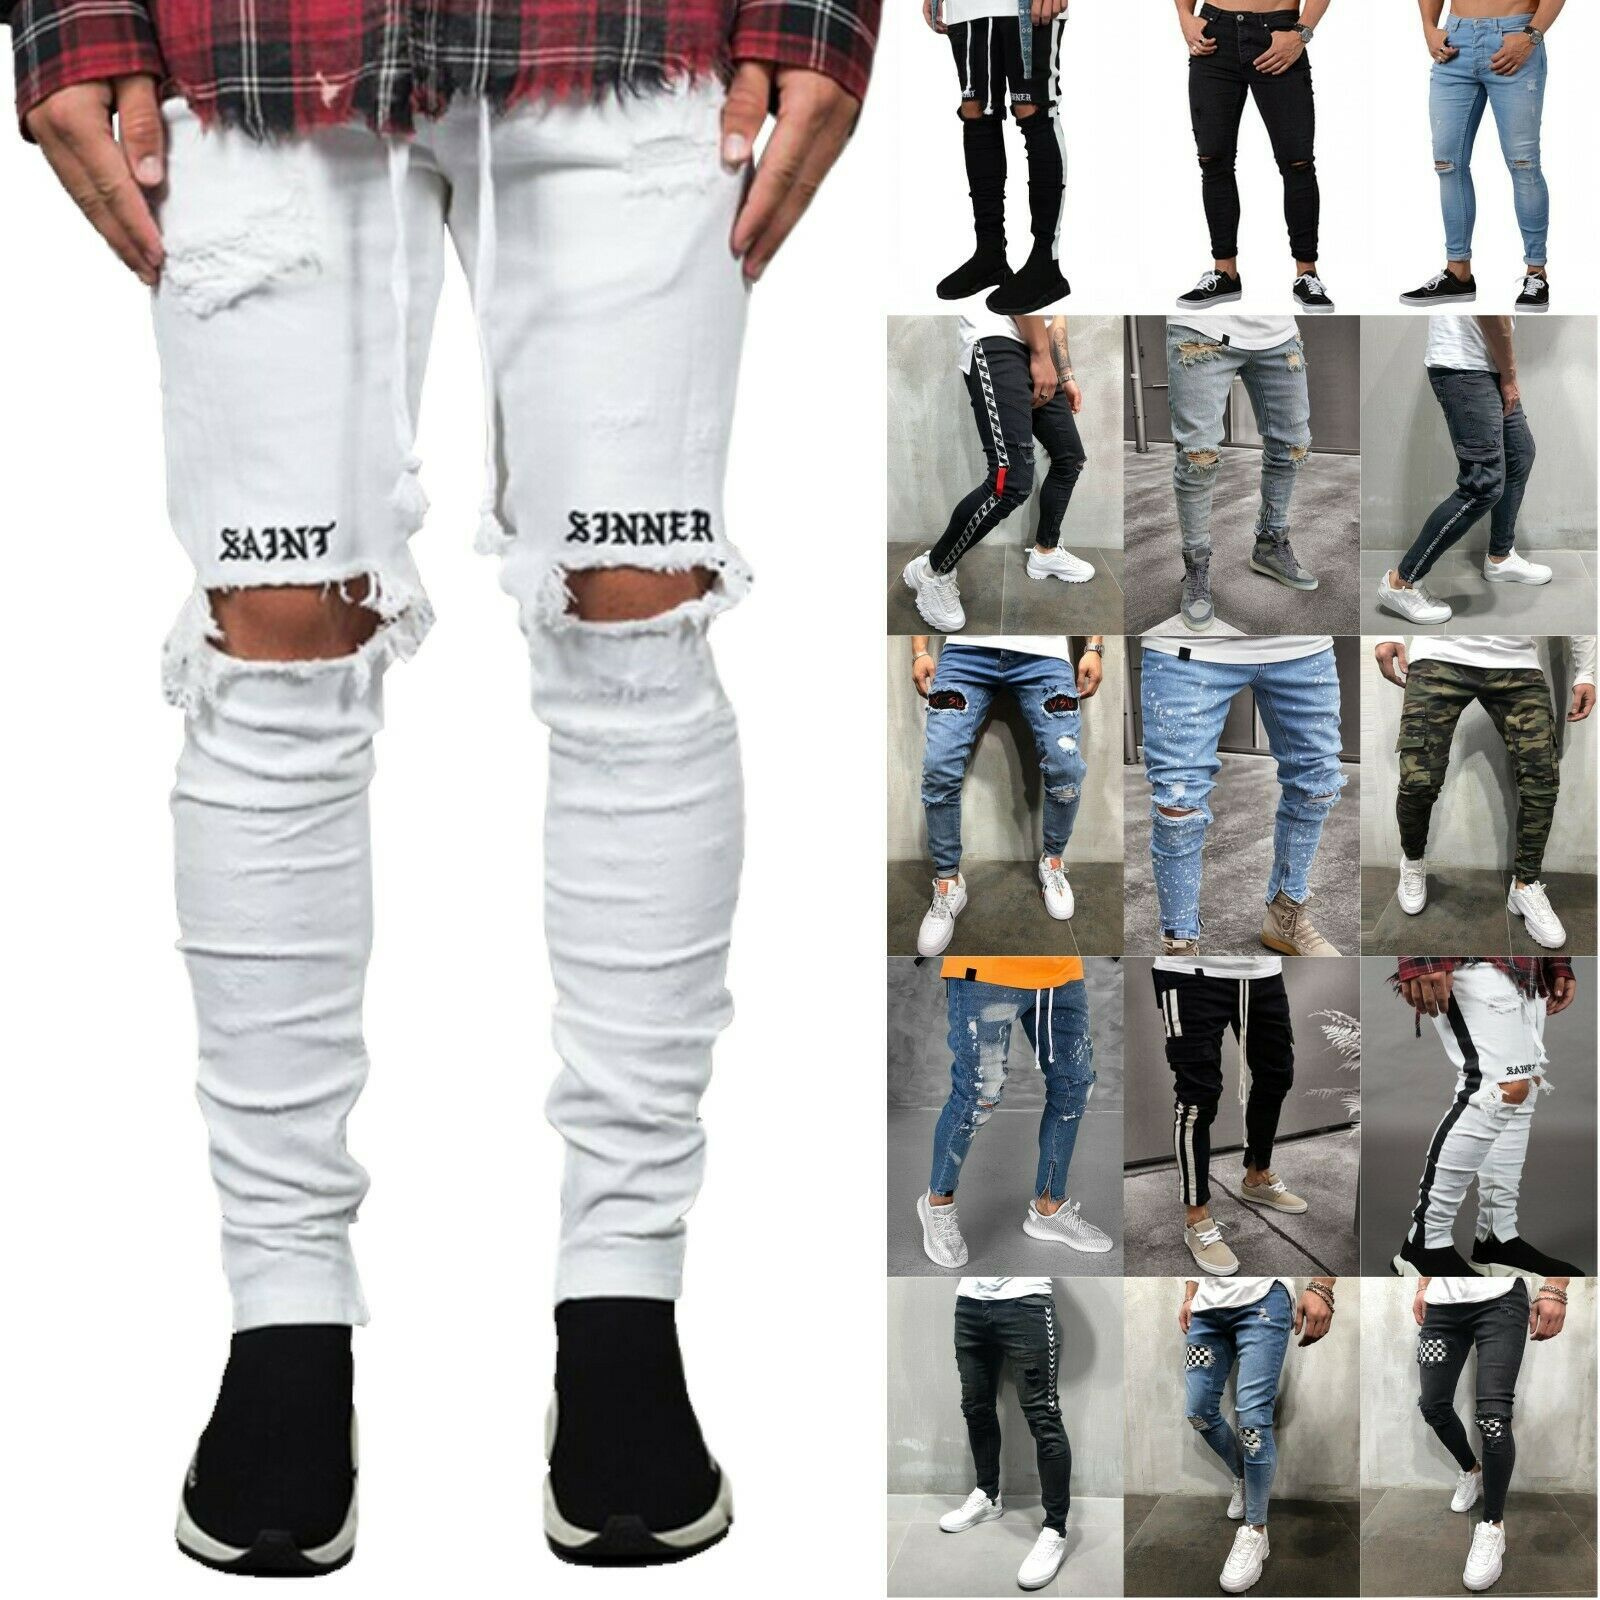 Mens Skinny Joggers Ripped Jeans Biker Frayed Stretchy Denim Slim Fit Trousers